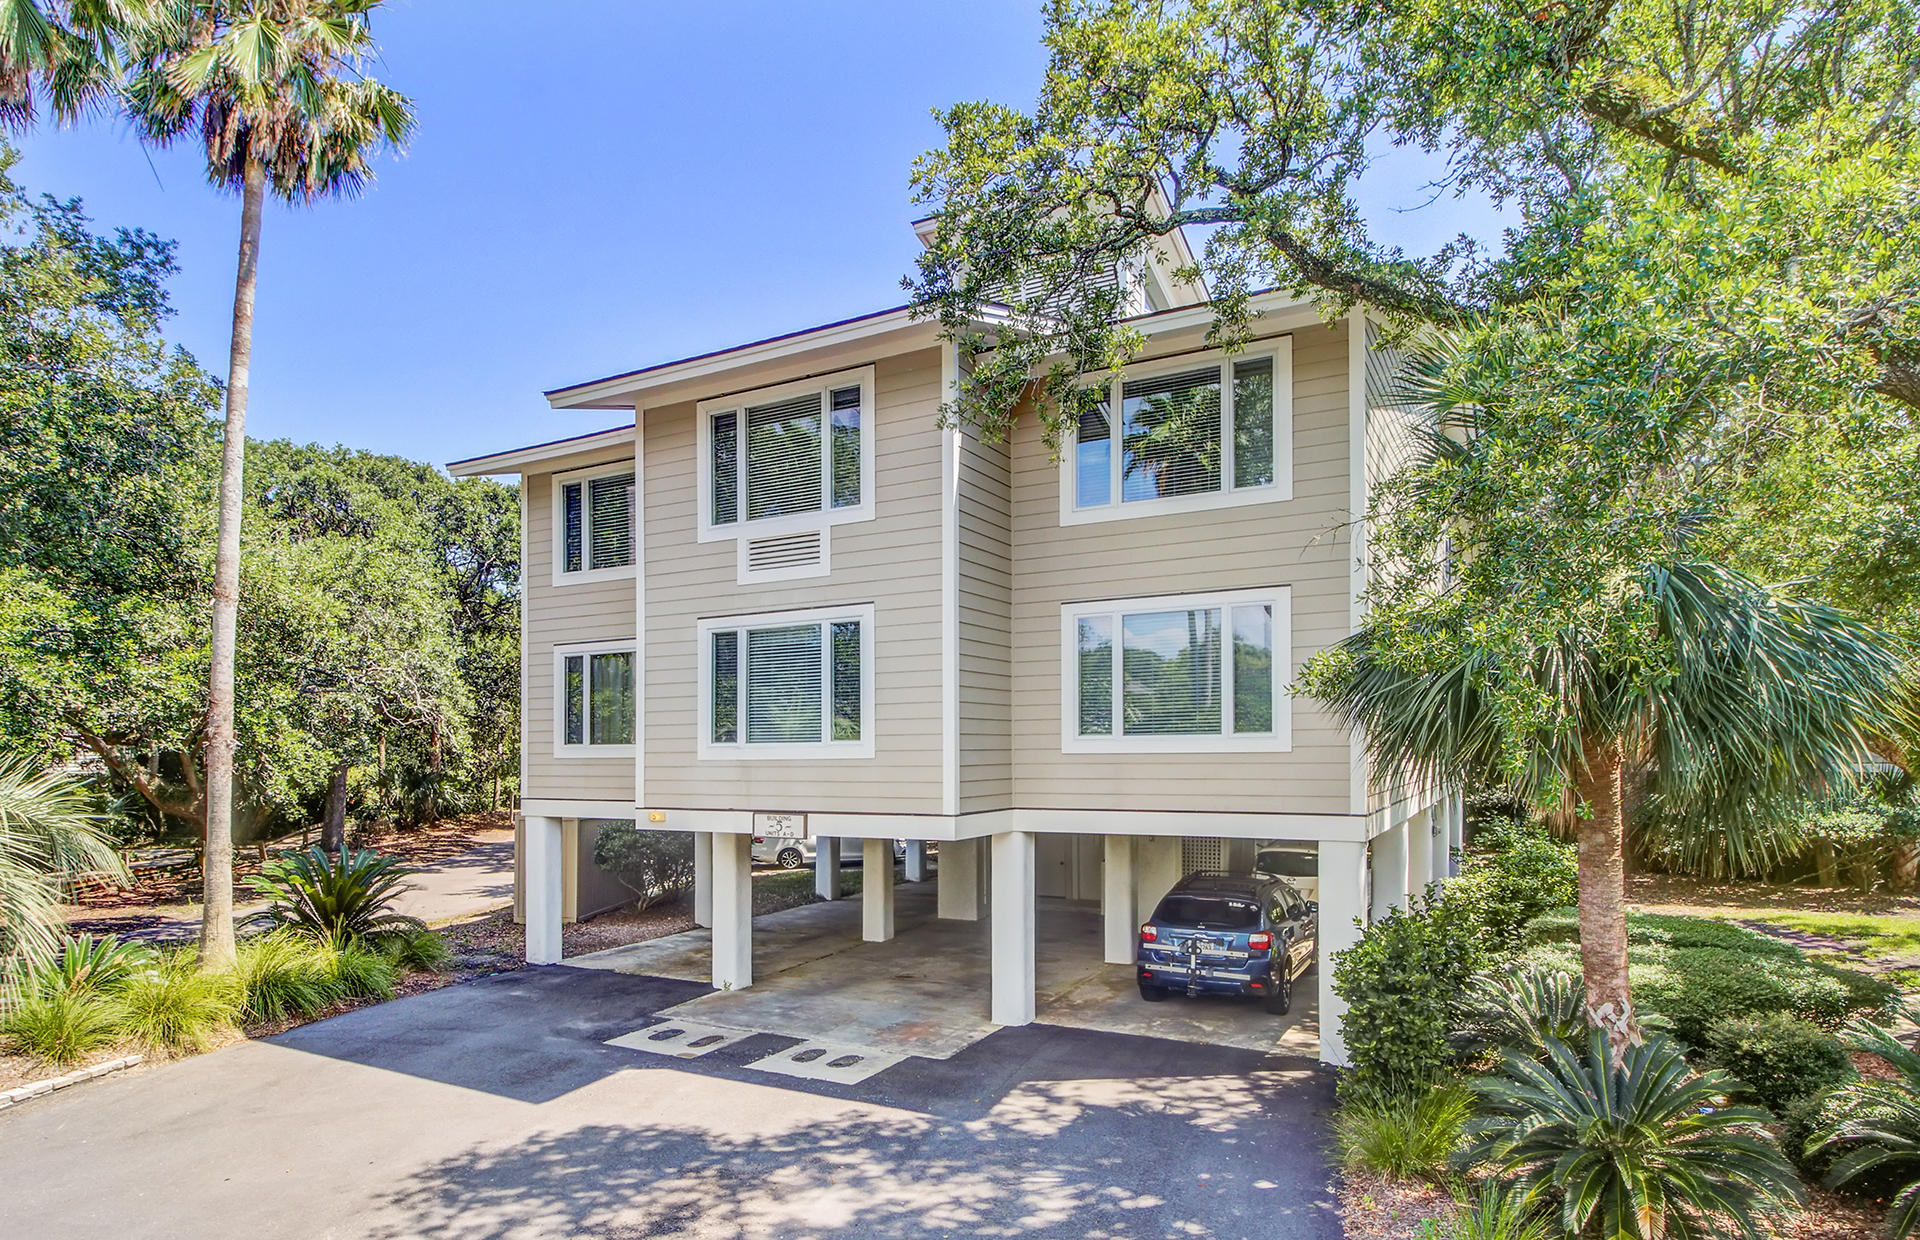 Wild Dunes Homes For Sale - 5 Seagrove, Isle of Palms, SC - 33